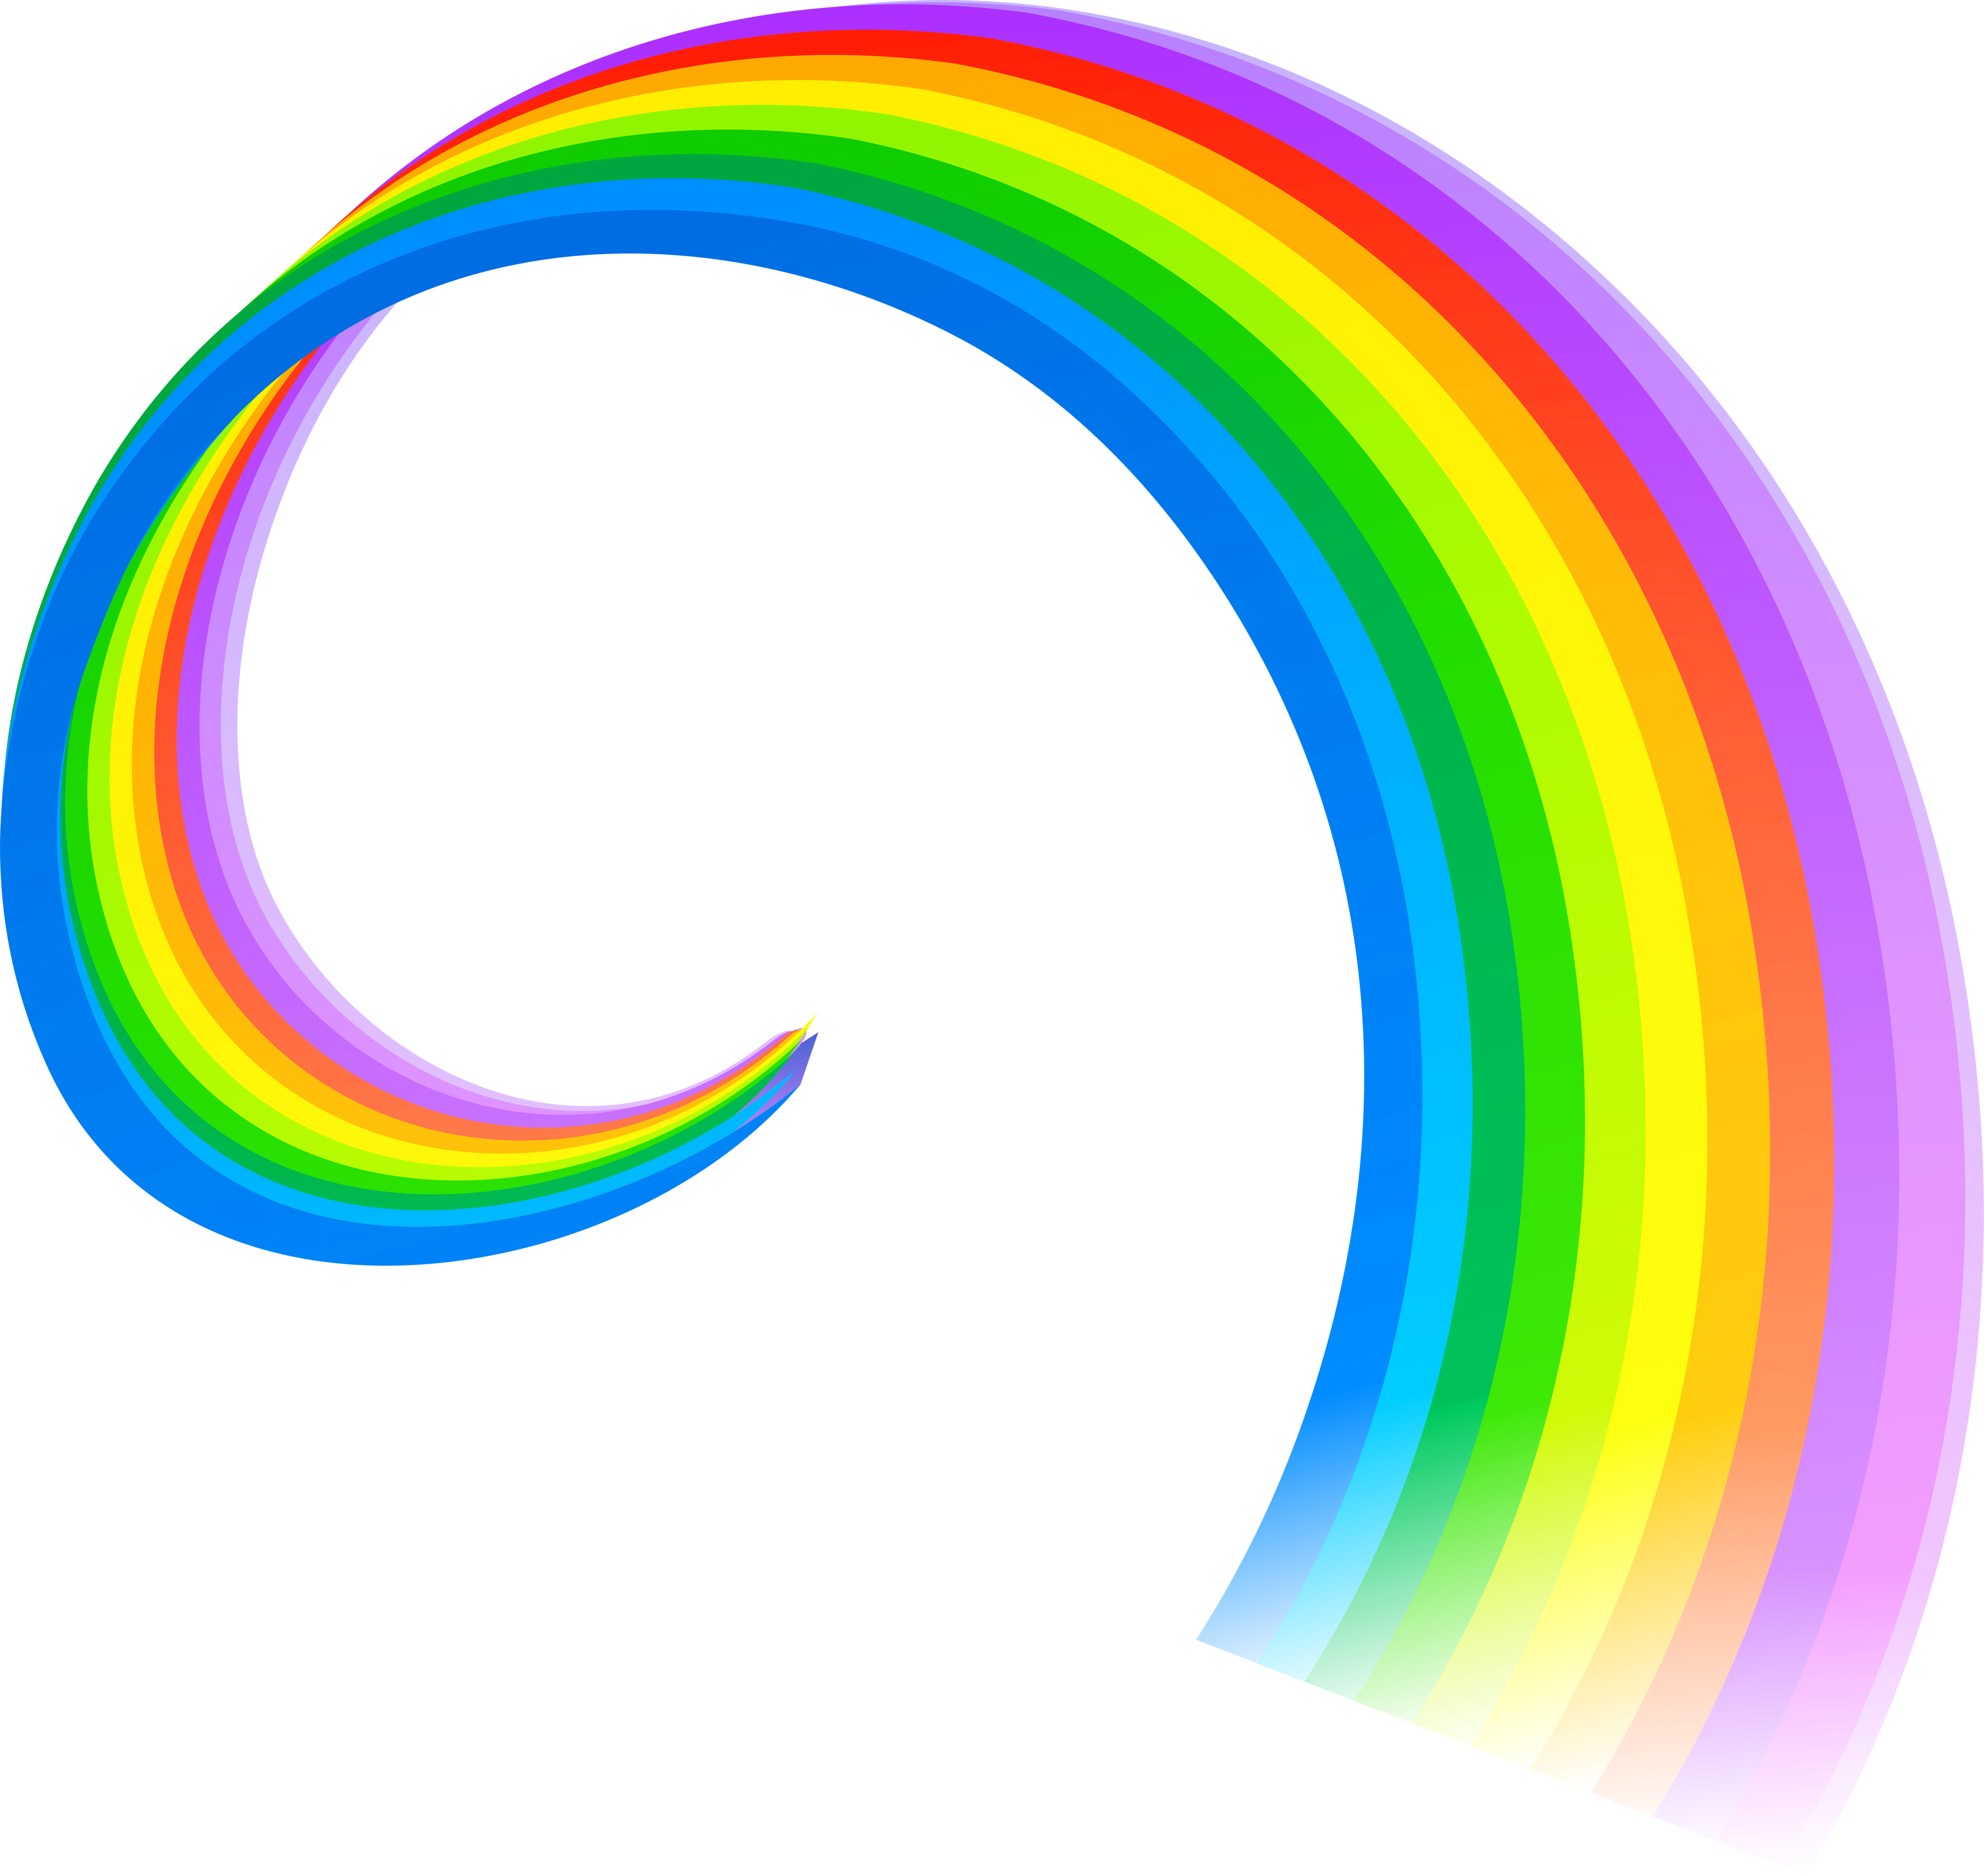 Rainbow PNG image - Rainbow HD PNG